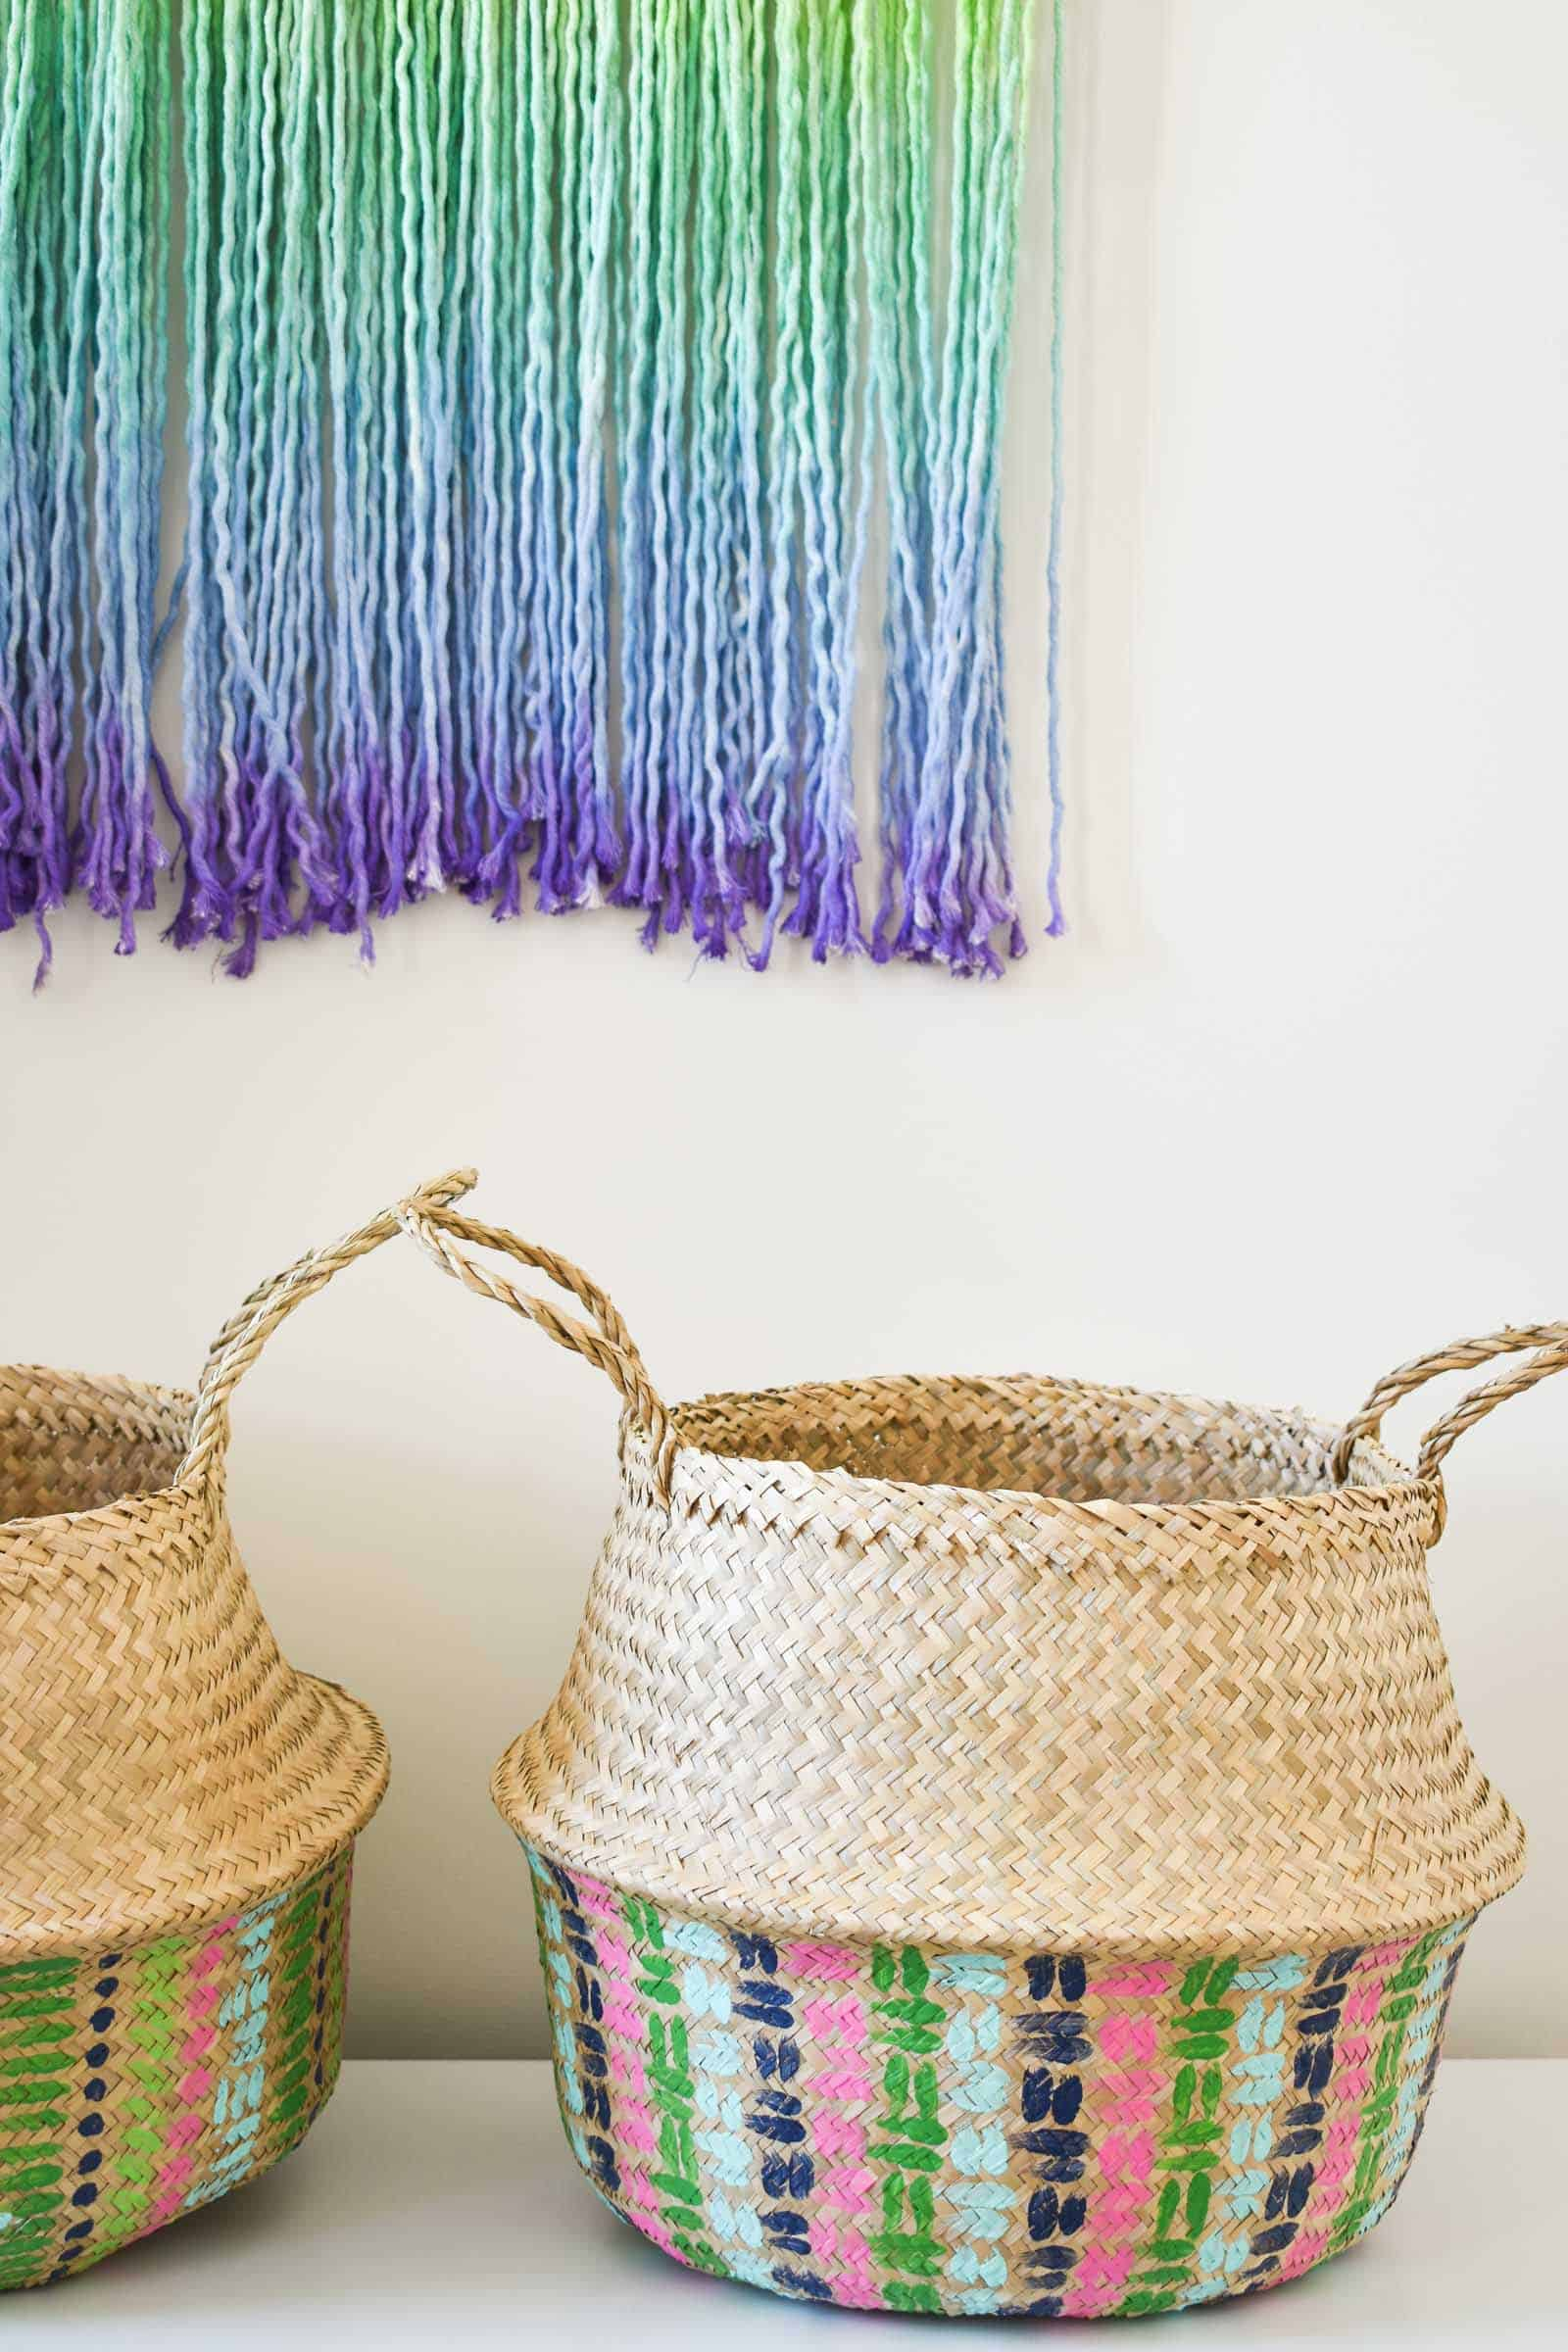 styled baskets in the guest room